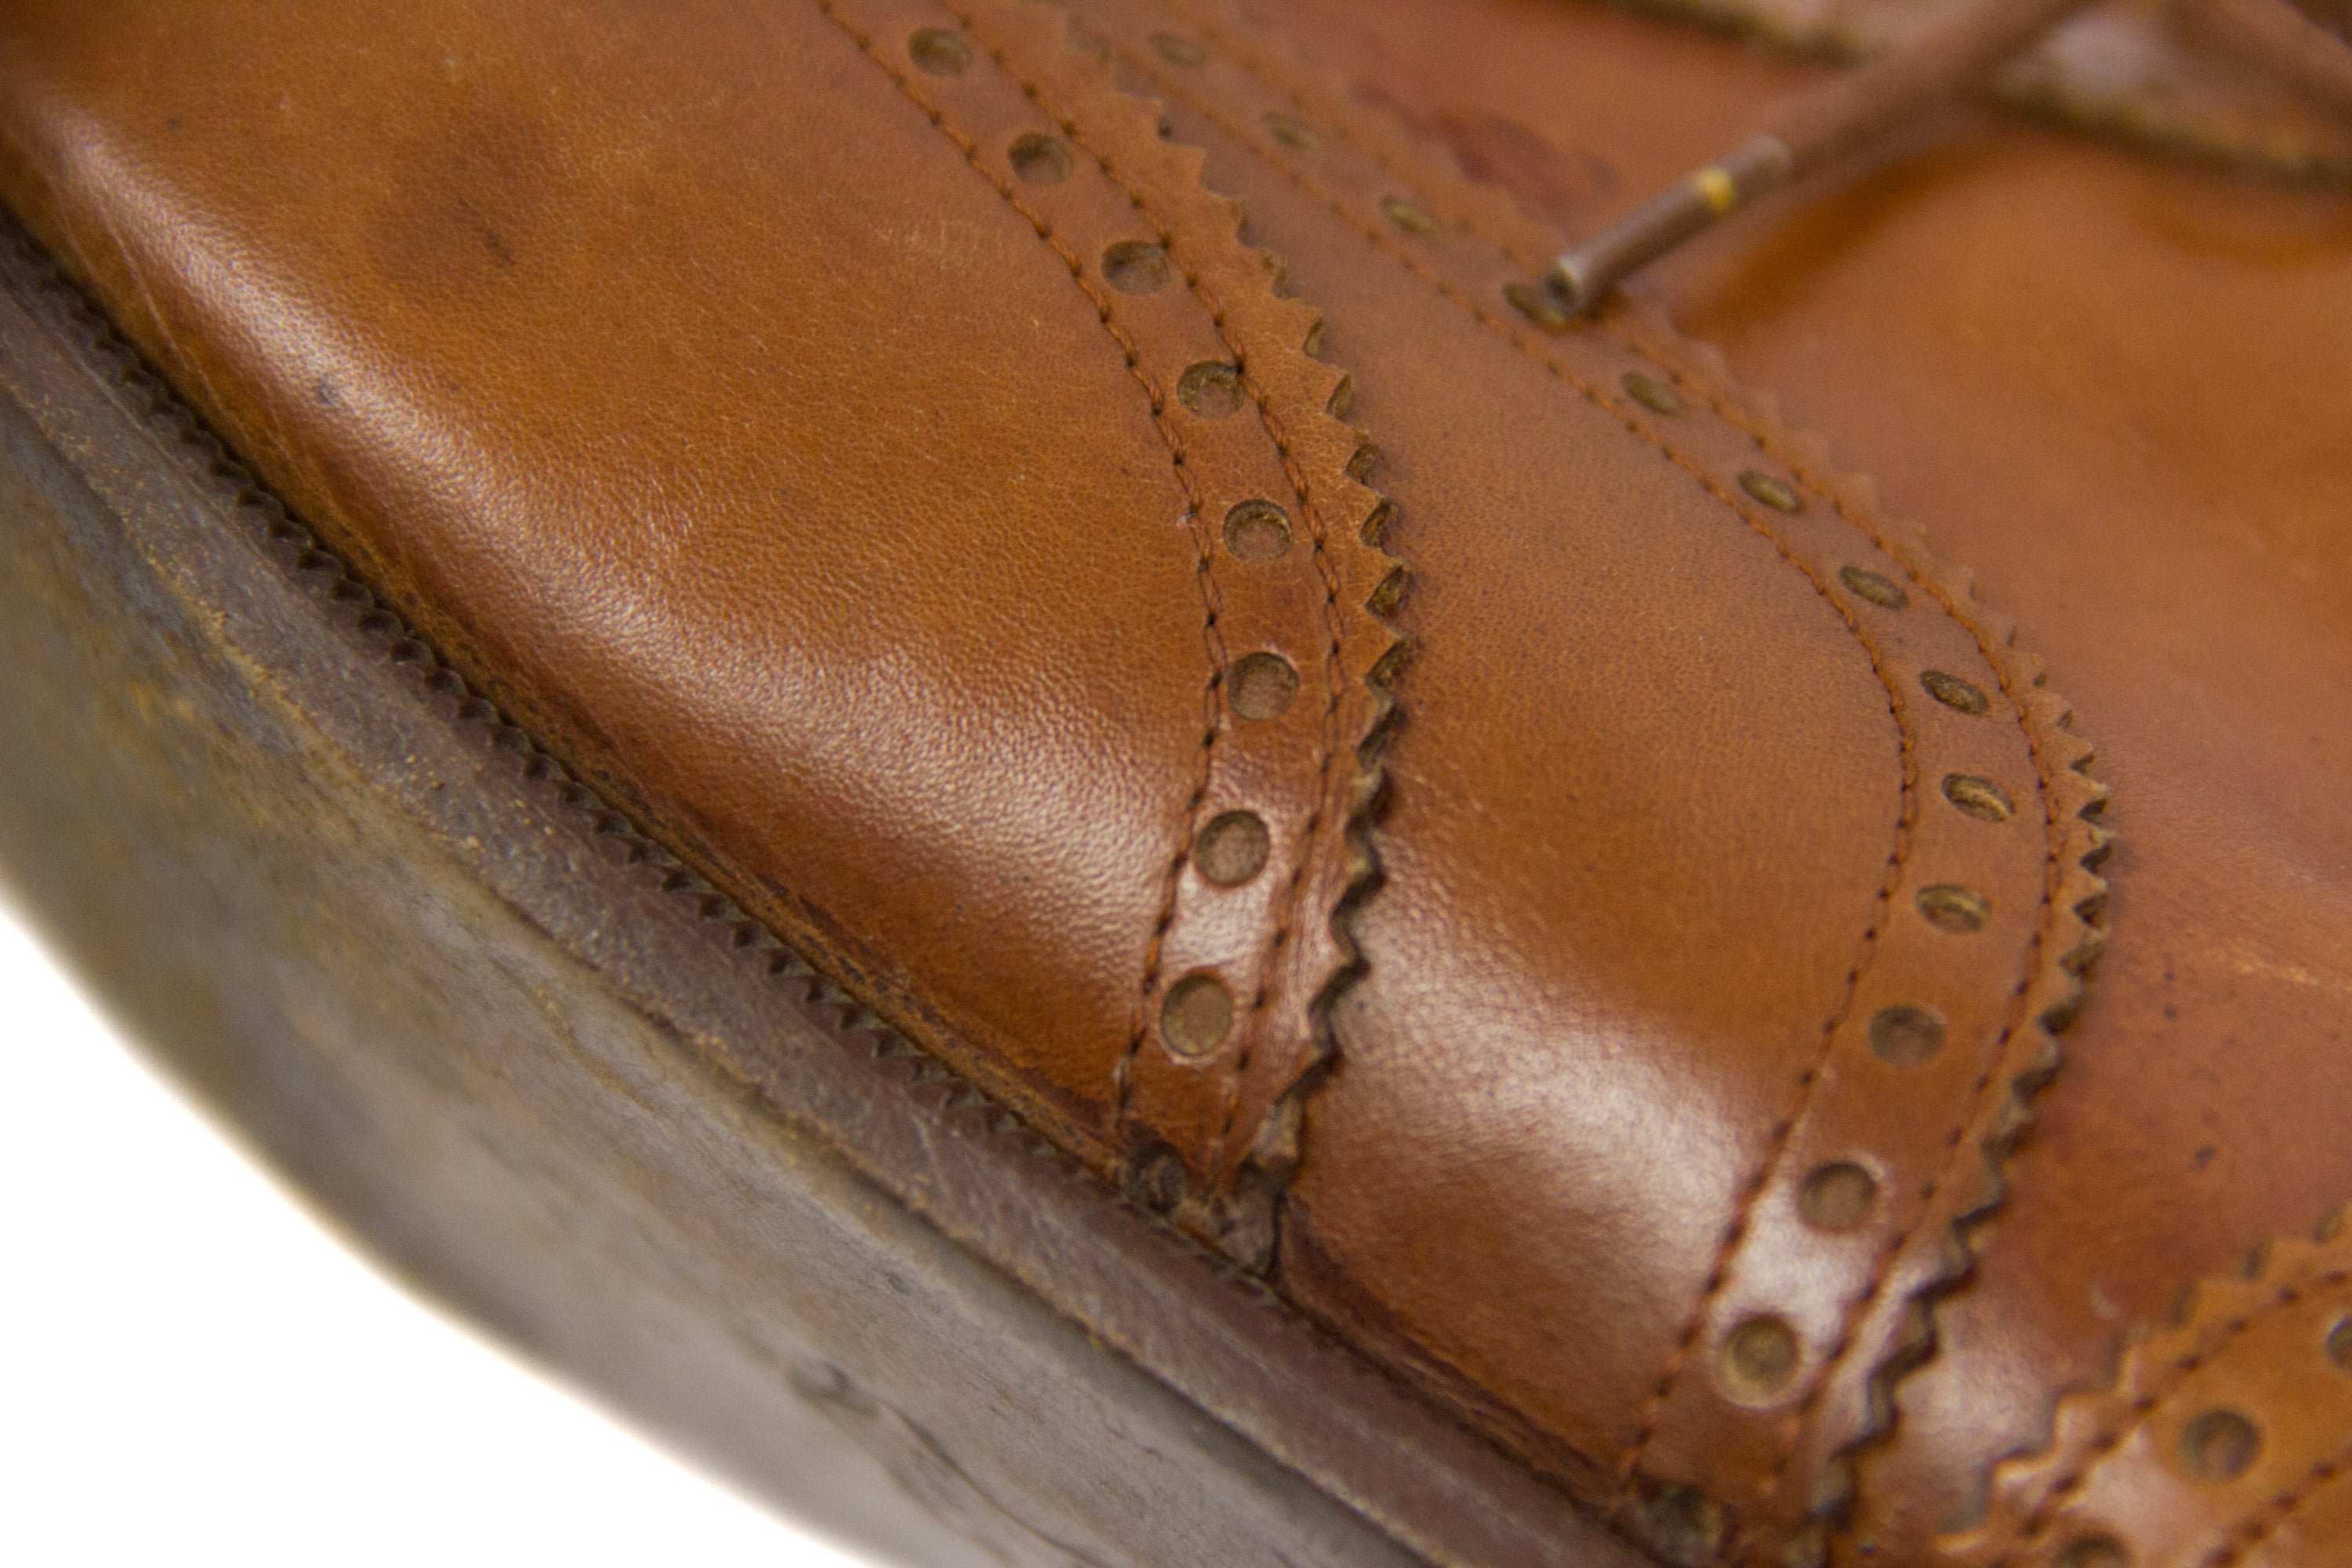 Vintage Italian Leather Wingtip Brogue Oxford Shoes, SIZE US 10.5, EU 44 - secondfirst